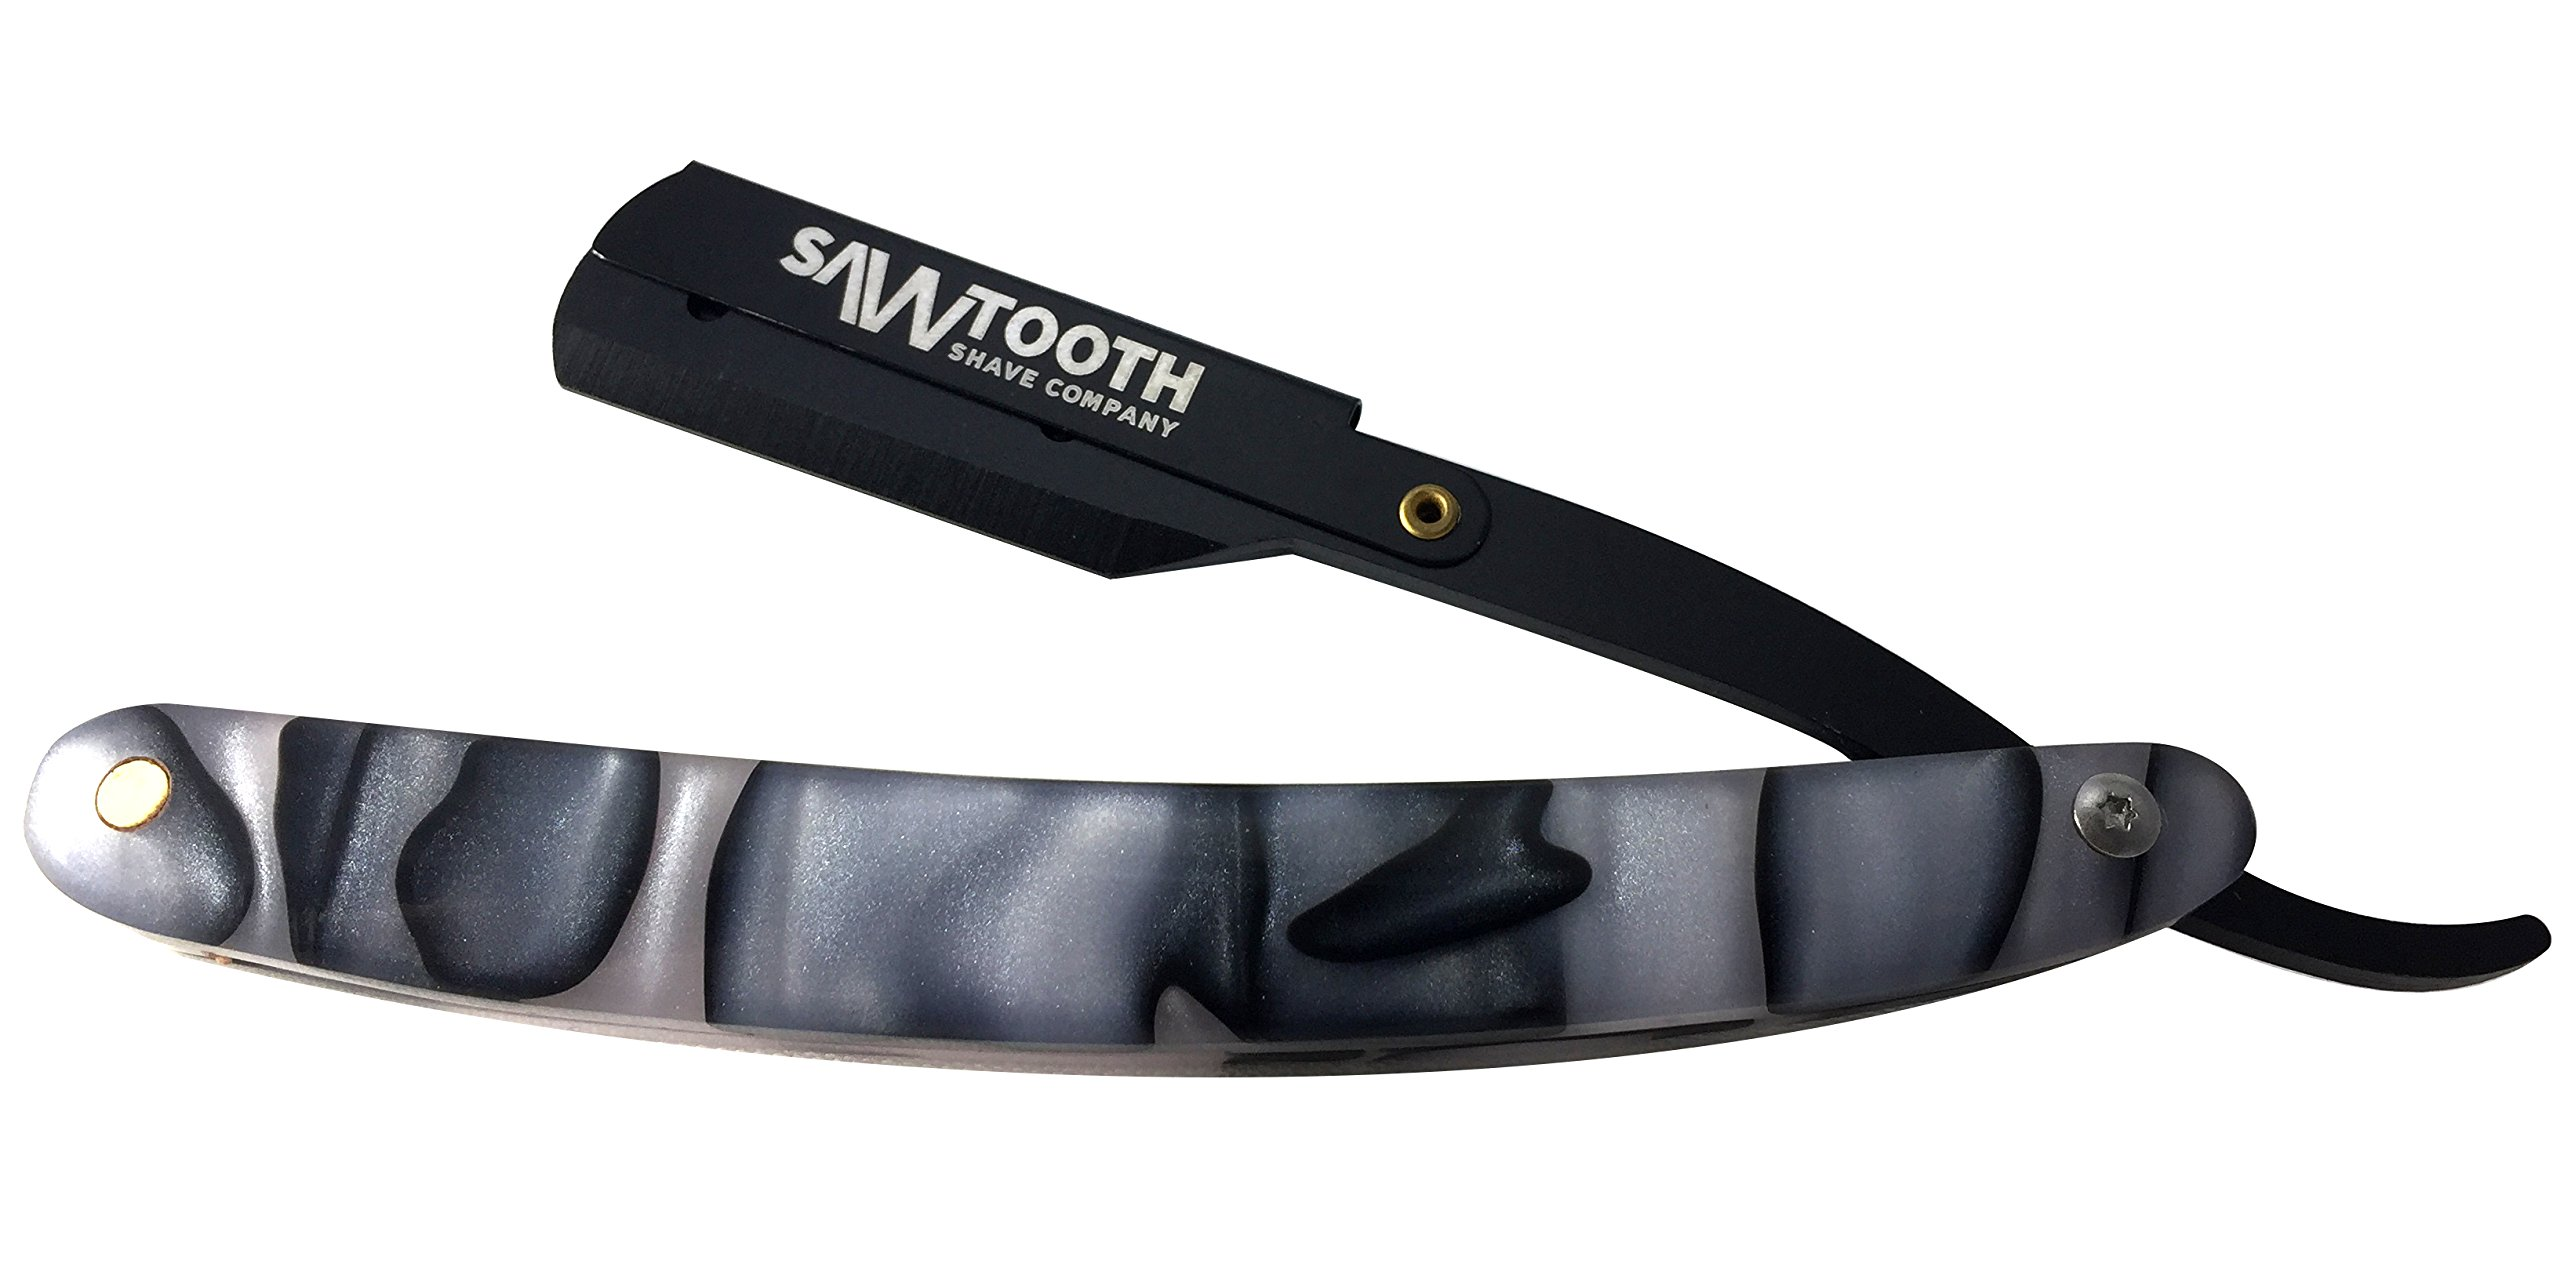 Straight Razor with Black and Silver Acrylic Handle by Sawtooth Shave Co, Includes Carrying Case, Replaceable Blades